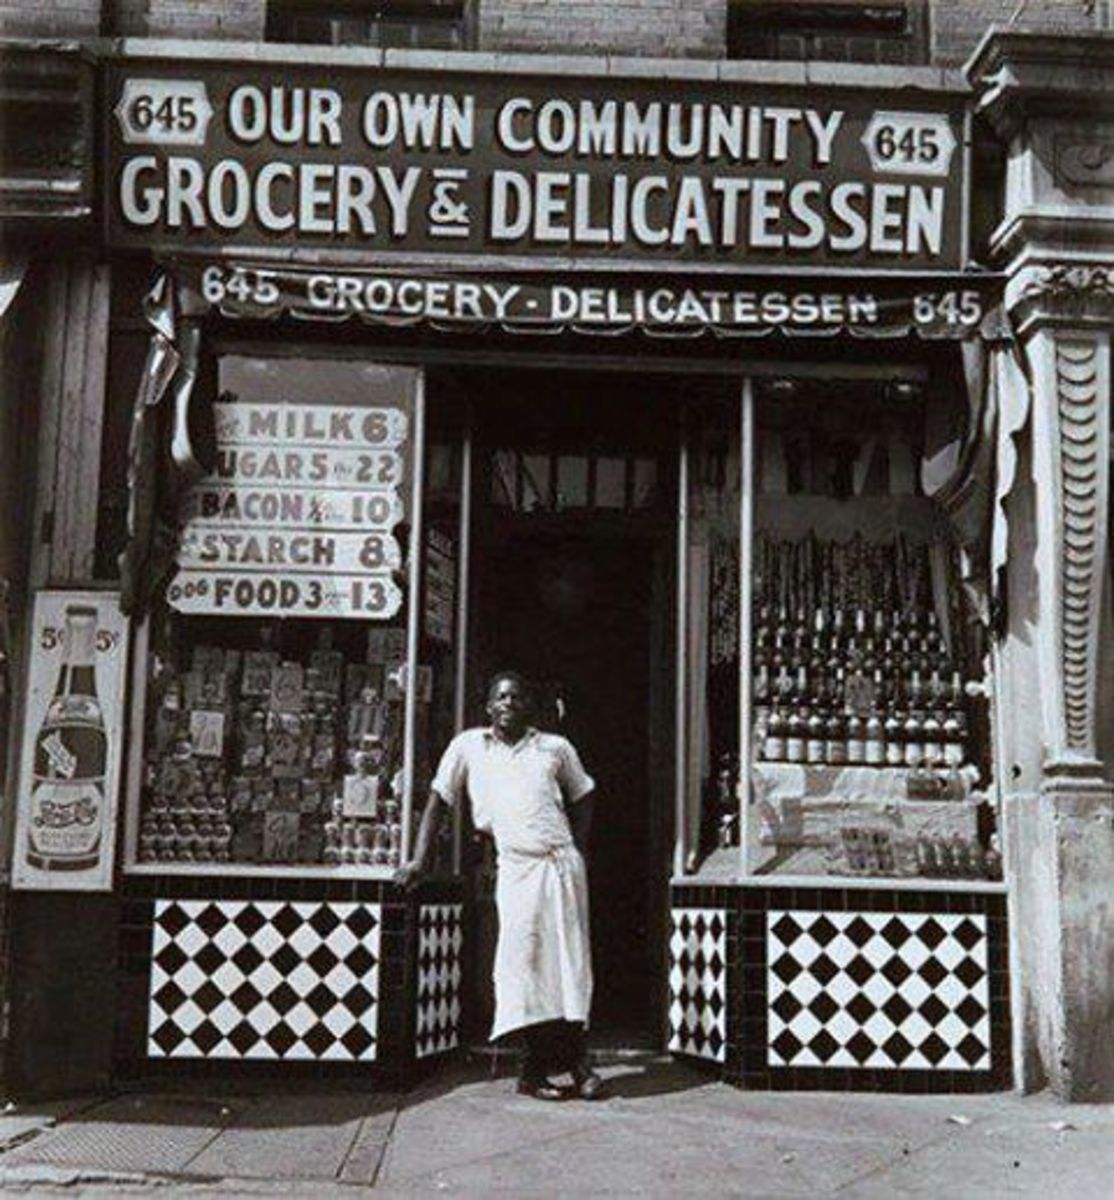 Just one of many thriving Black-owned establishments during segregation.